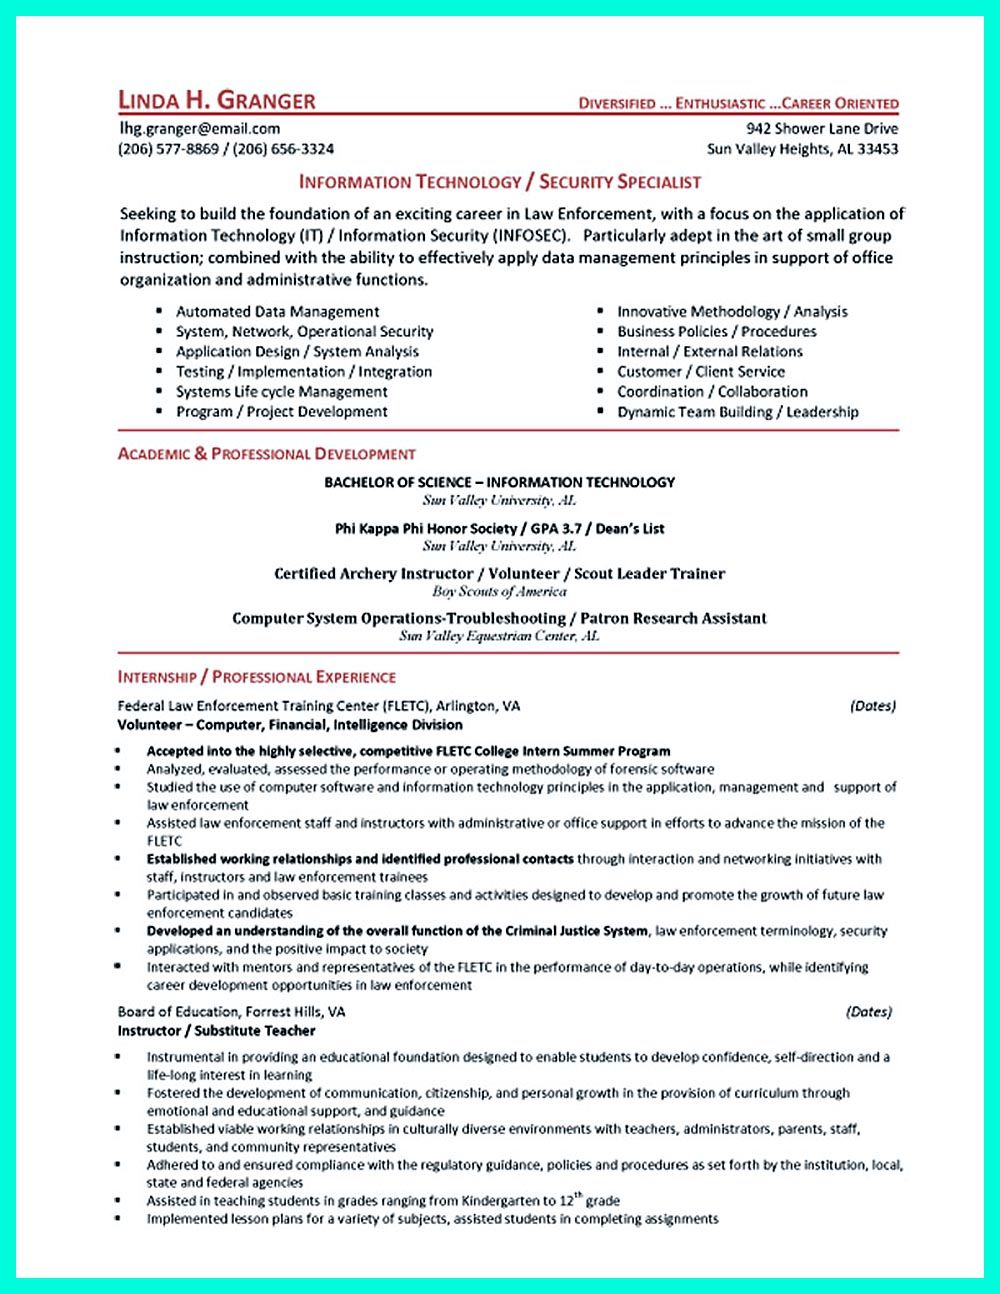 Powerful Cyber Security Resume To Get Hired Right Away Security Resume Job Resume Firefighter Resume